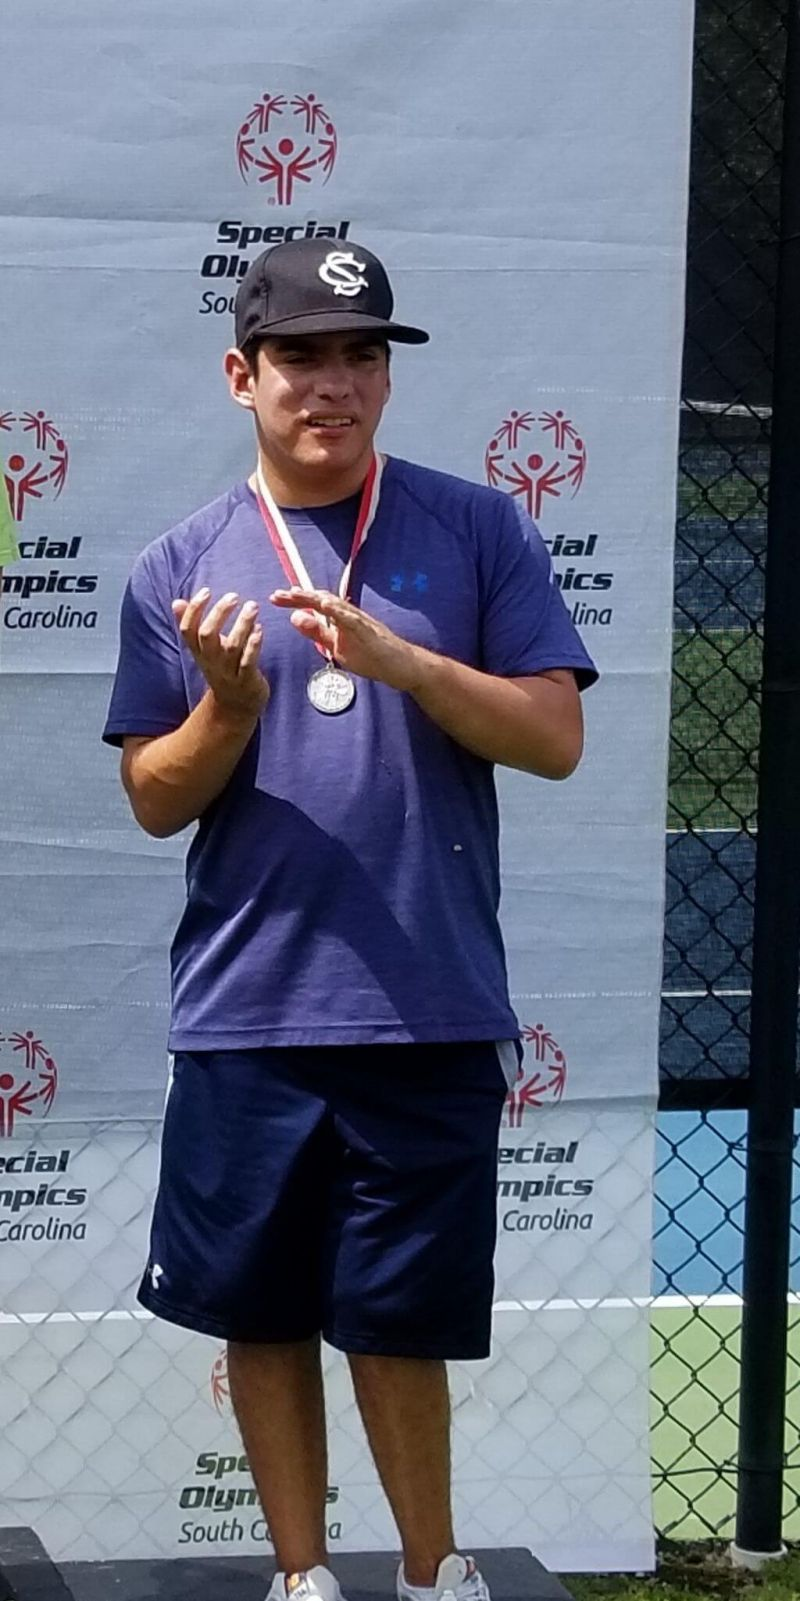 Special Olympic Silver Medal